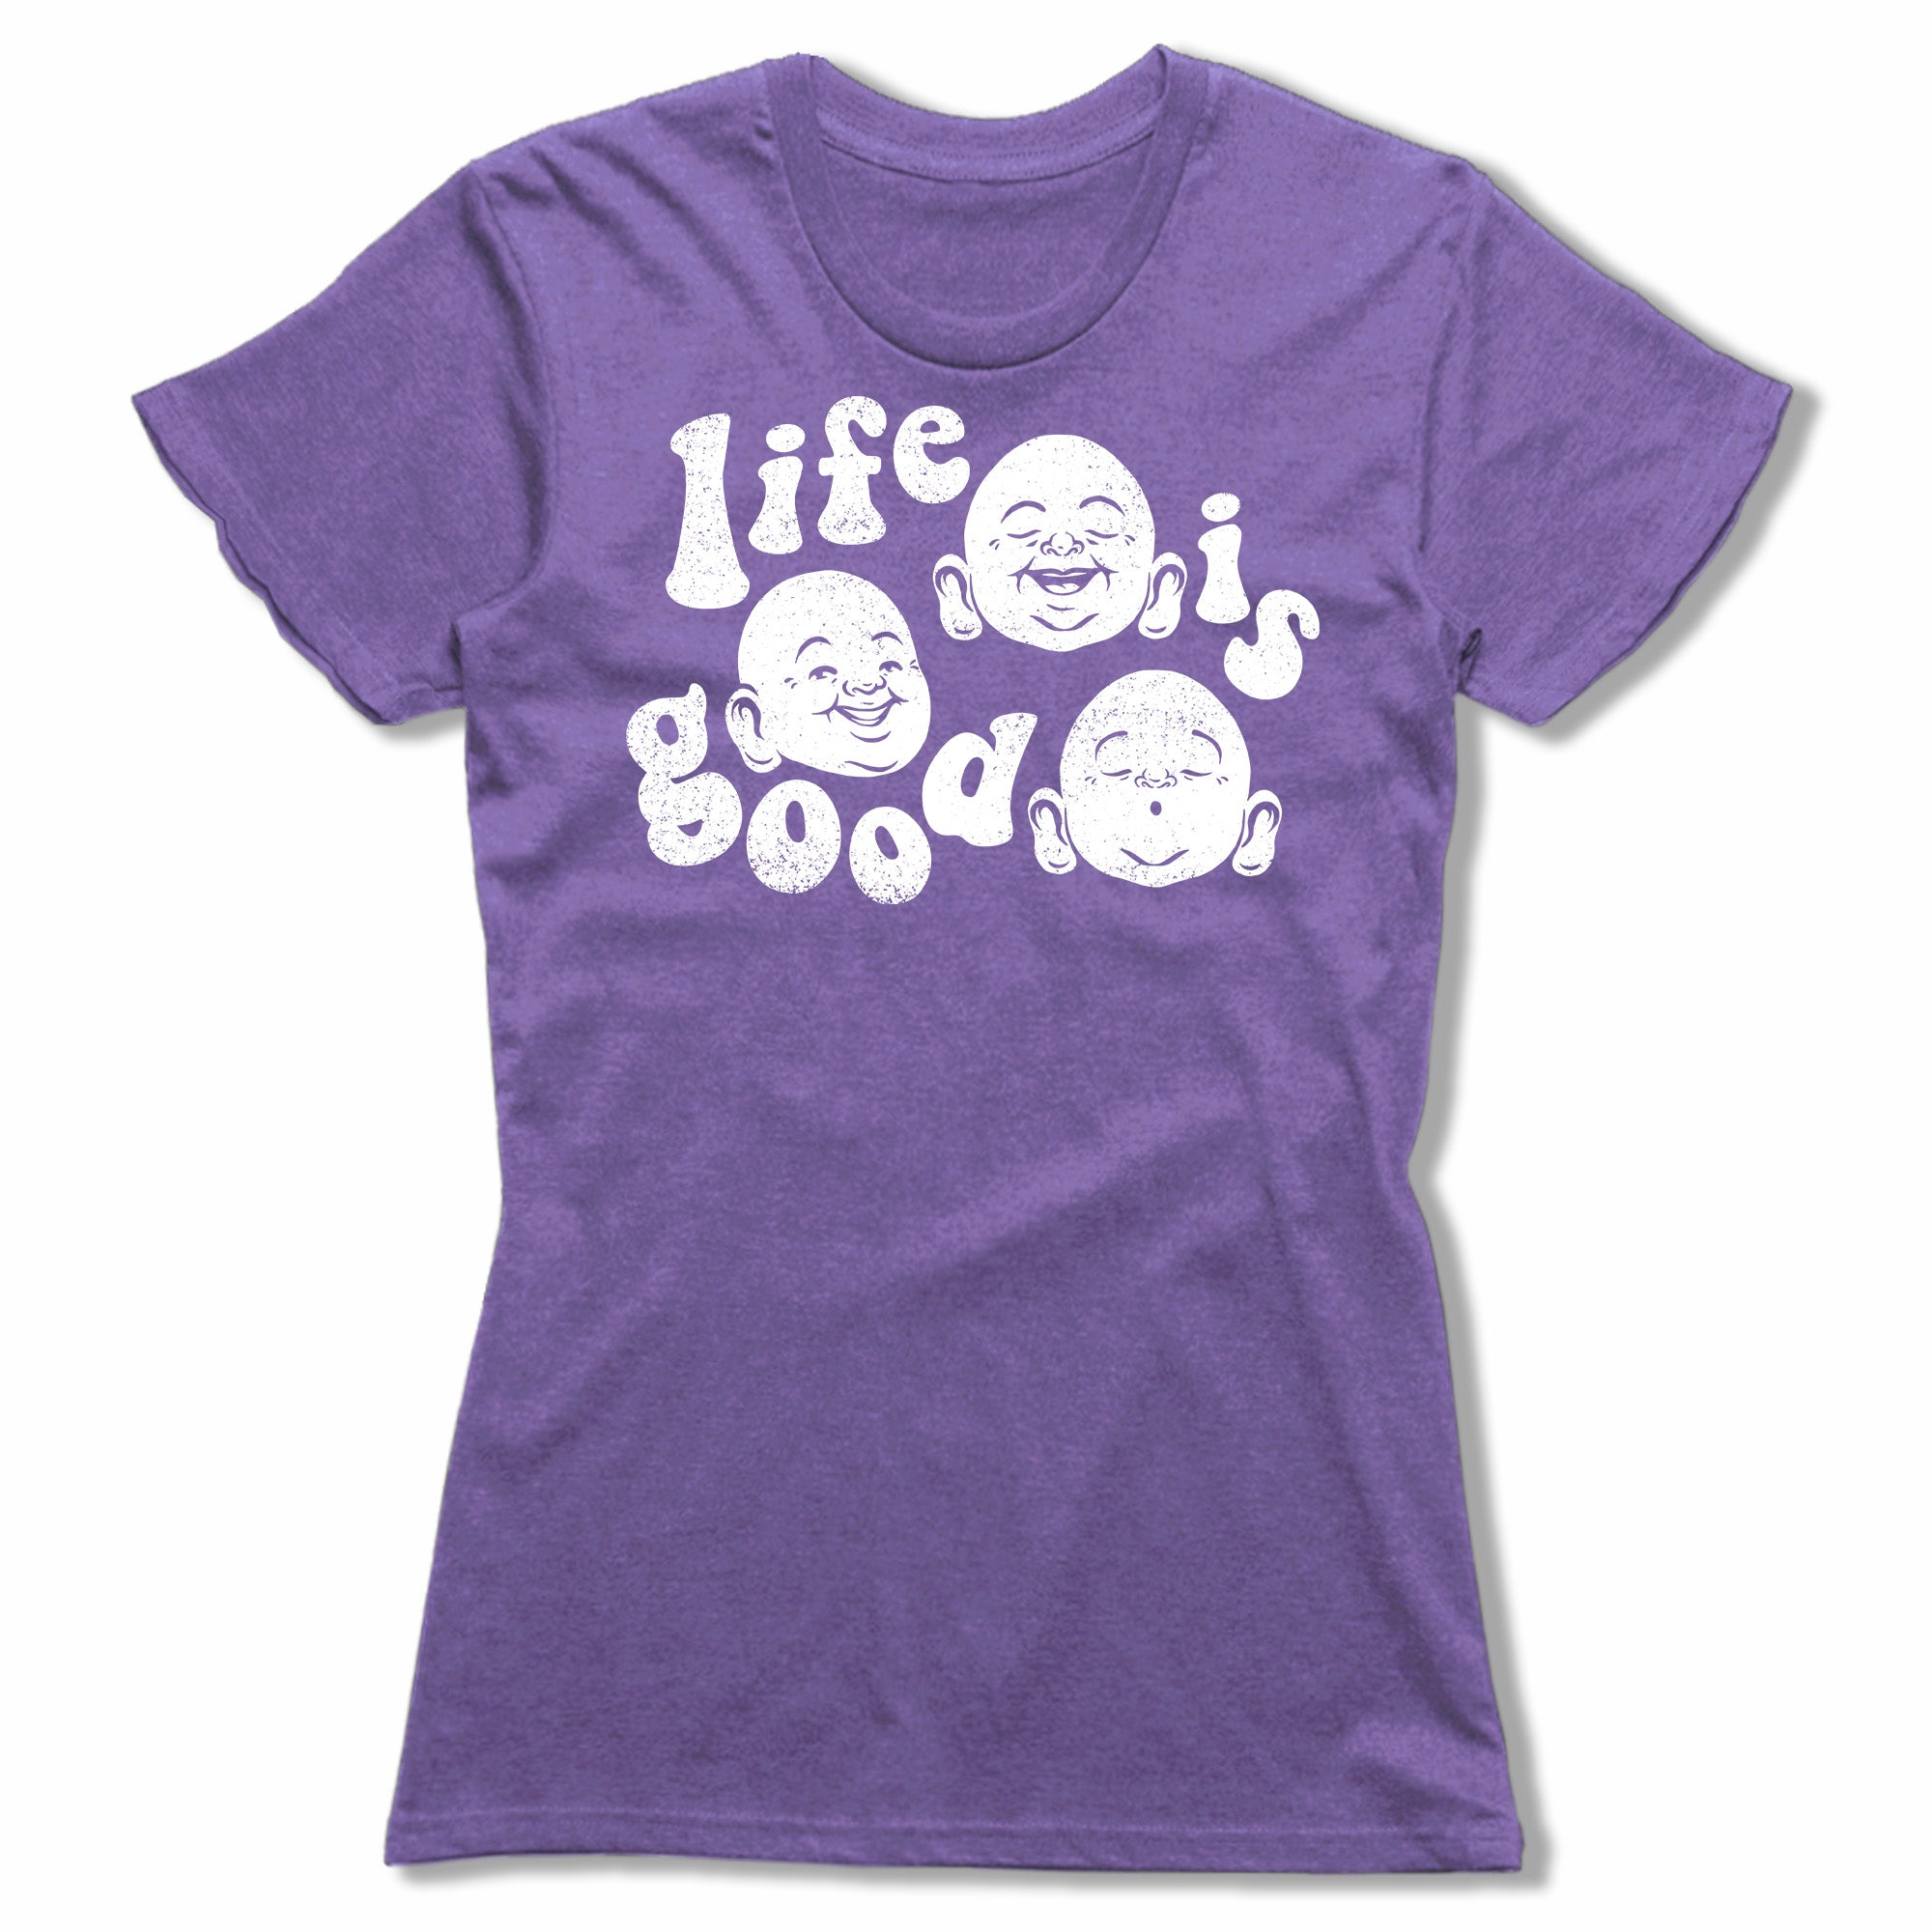 Life-Is-Good-Bitty-Buda-Women-T-Shirt-Purple